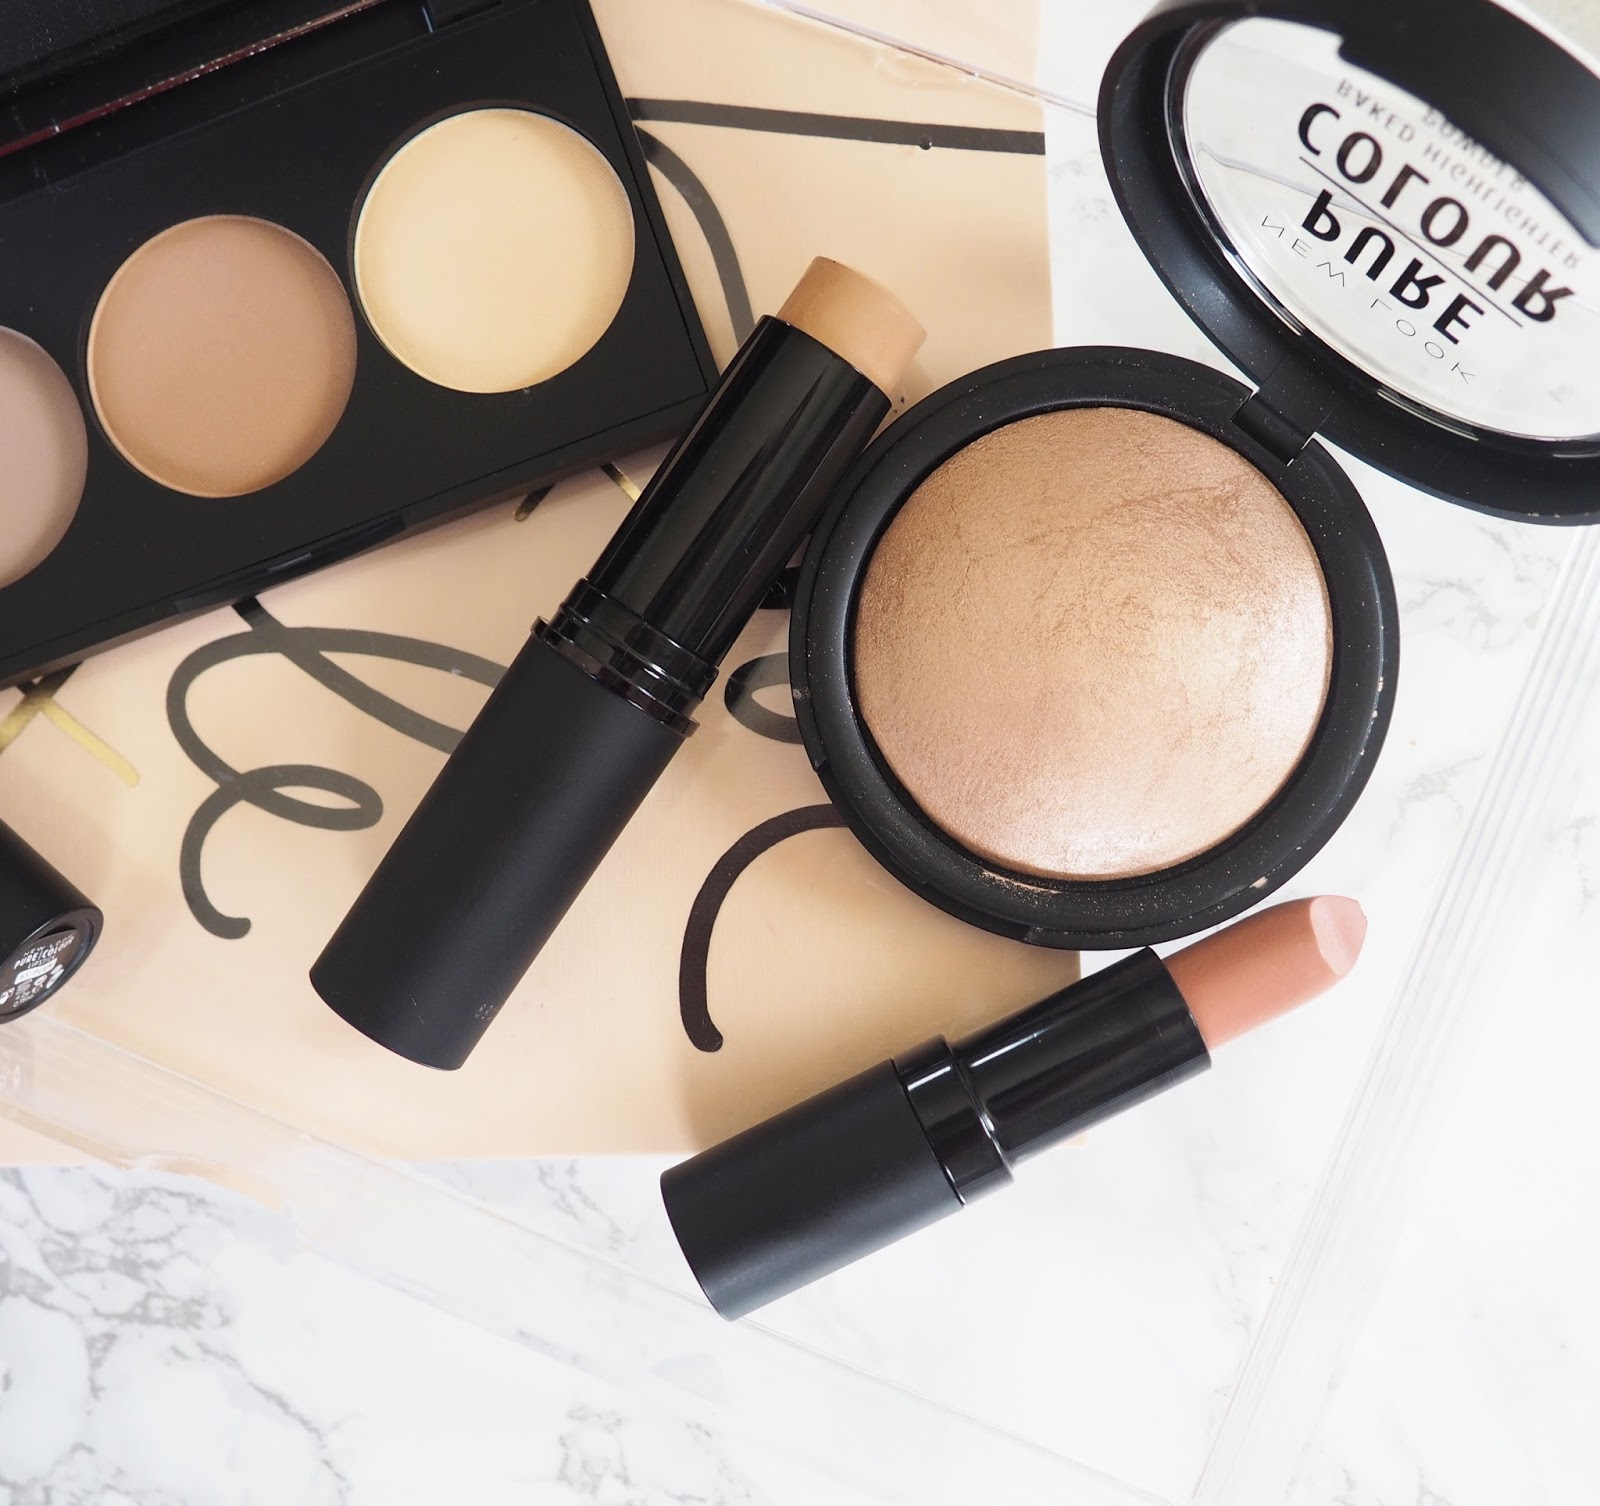 Becoming A Beauty Blogger On A Budget, New Look Beauty Haul, new look makeup review, budget beauty 2016